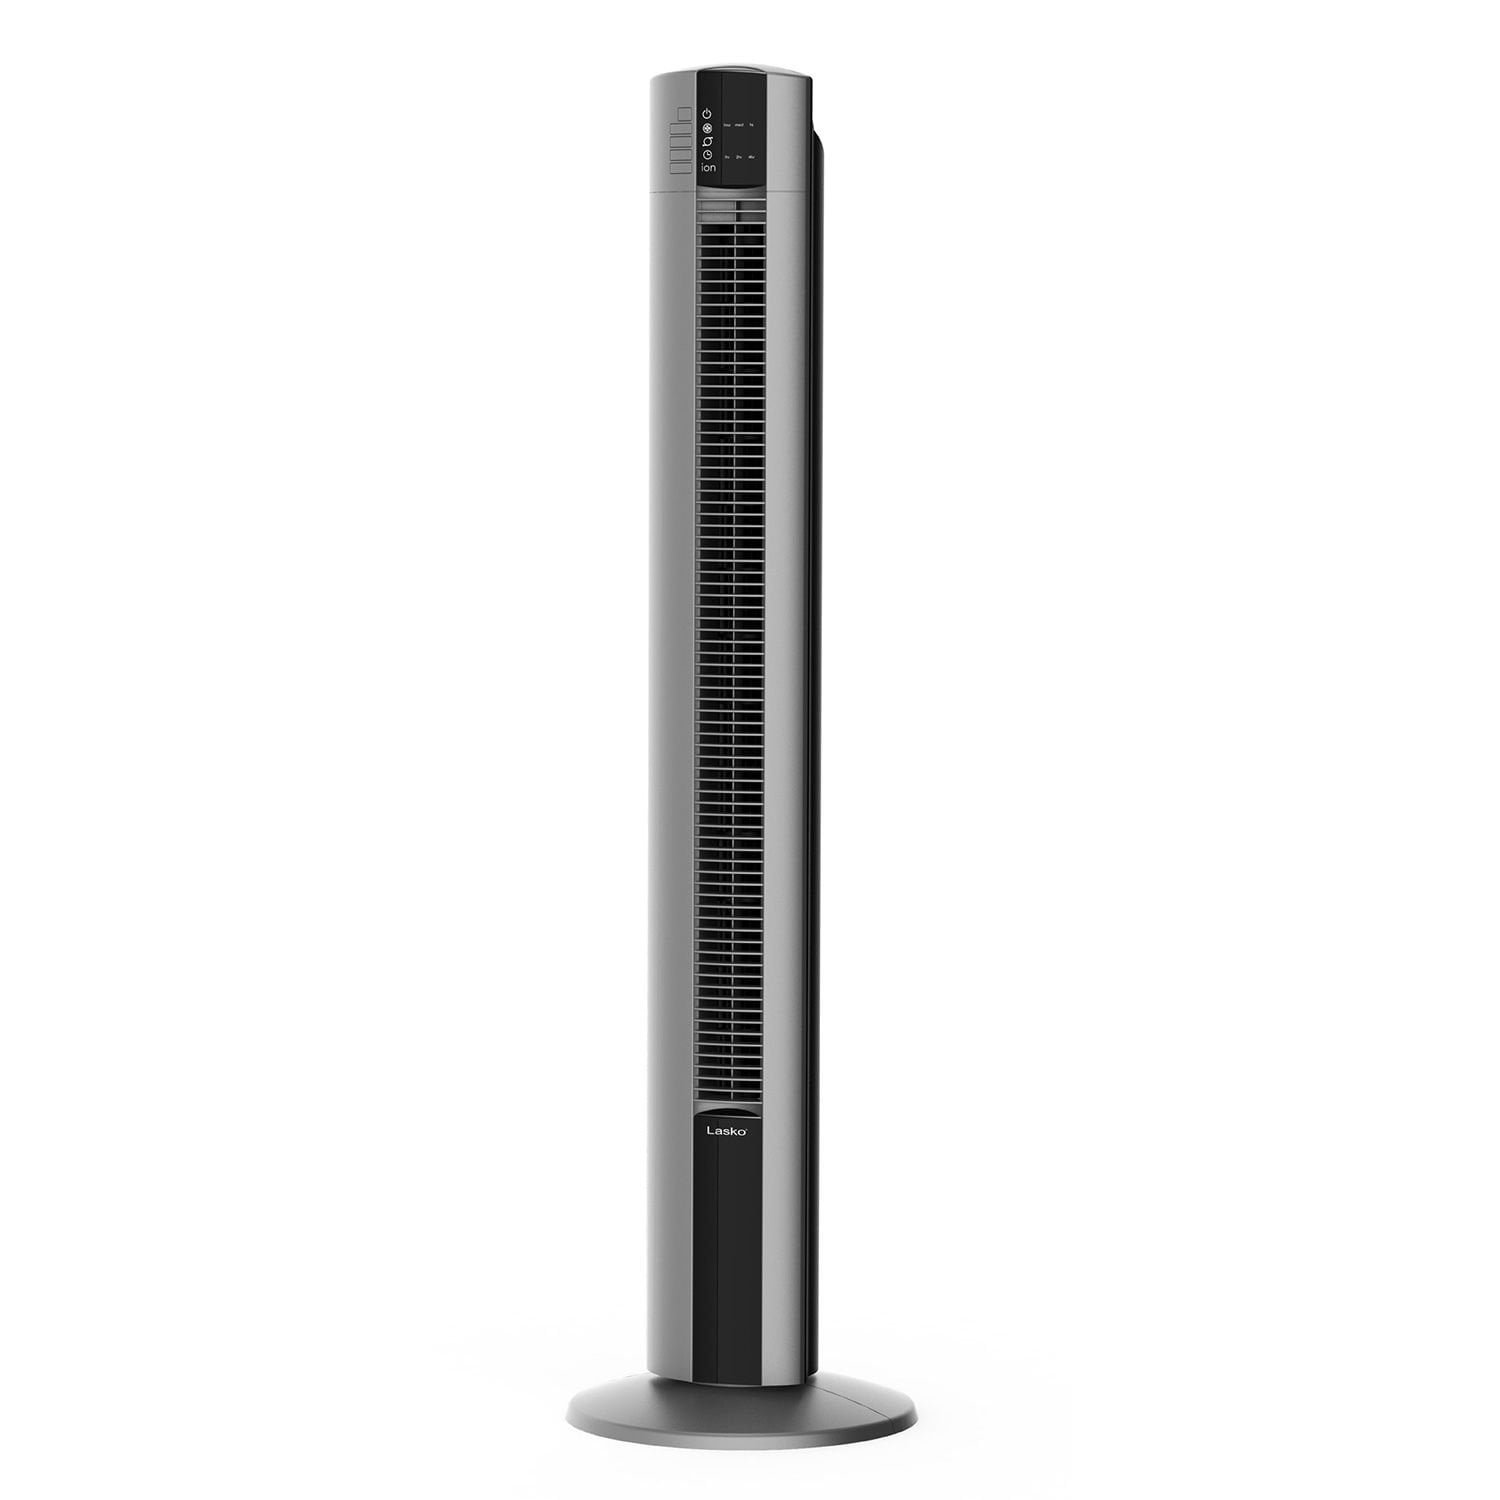 Lasko Ultra Air Tower Fan